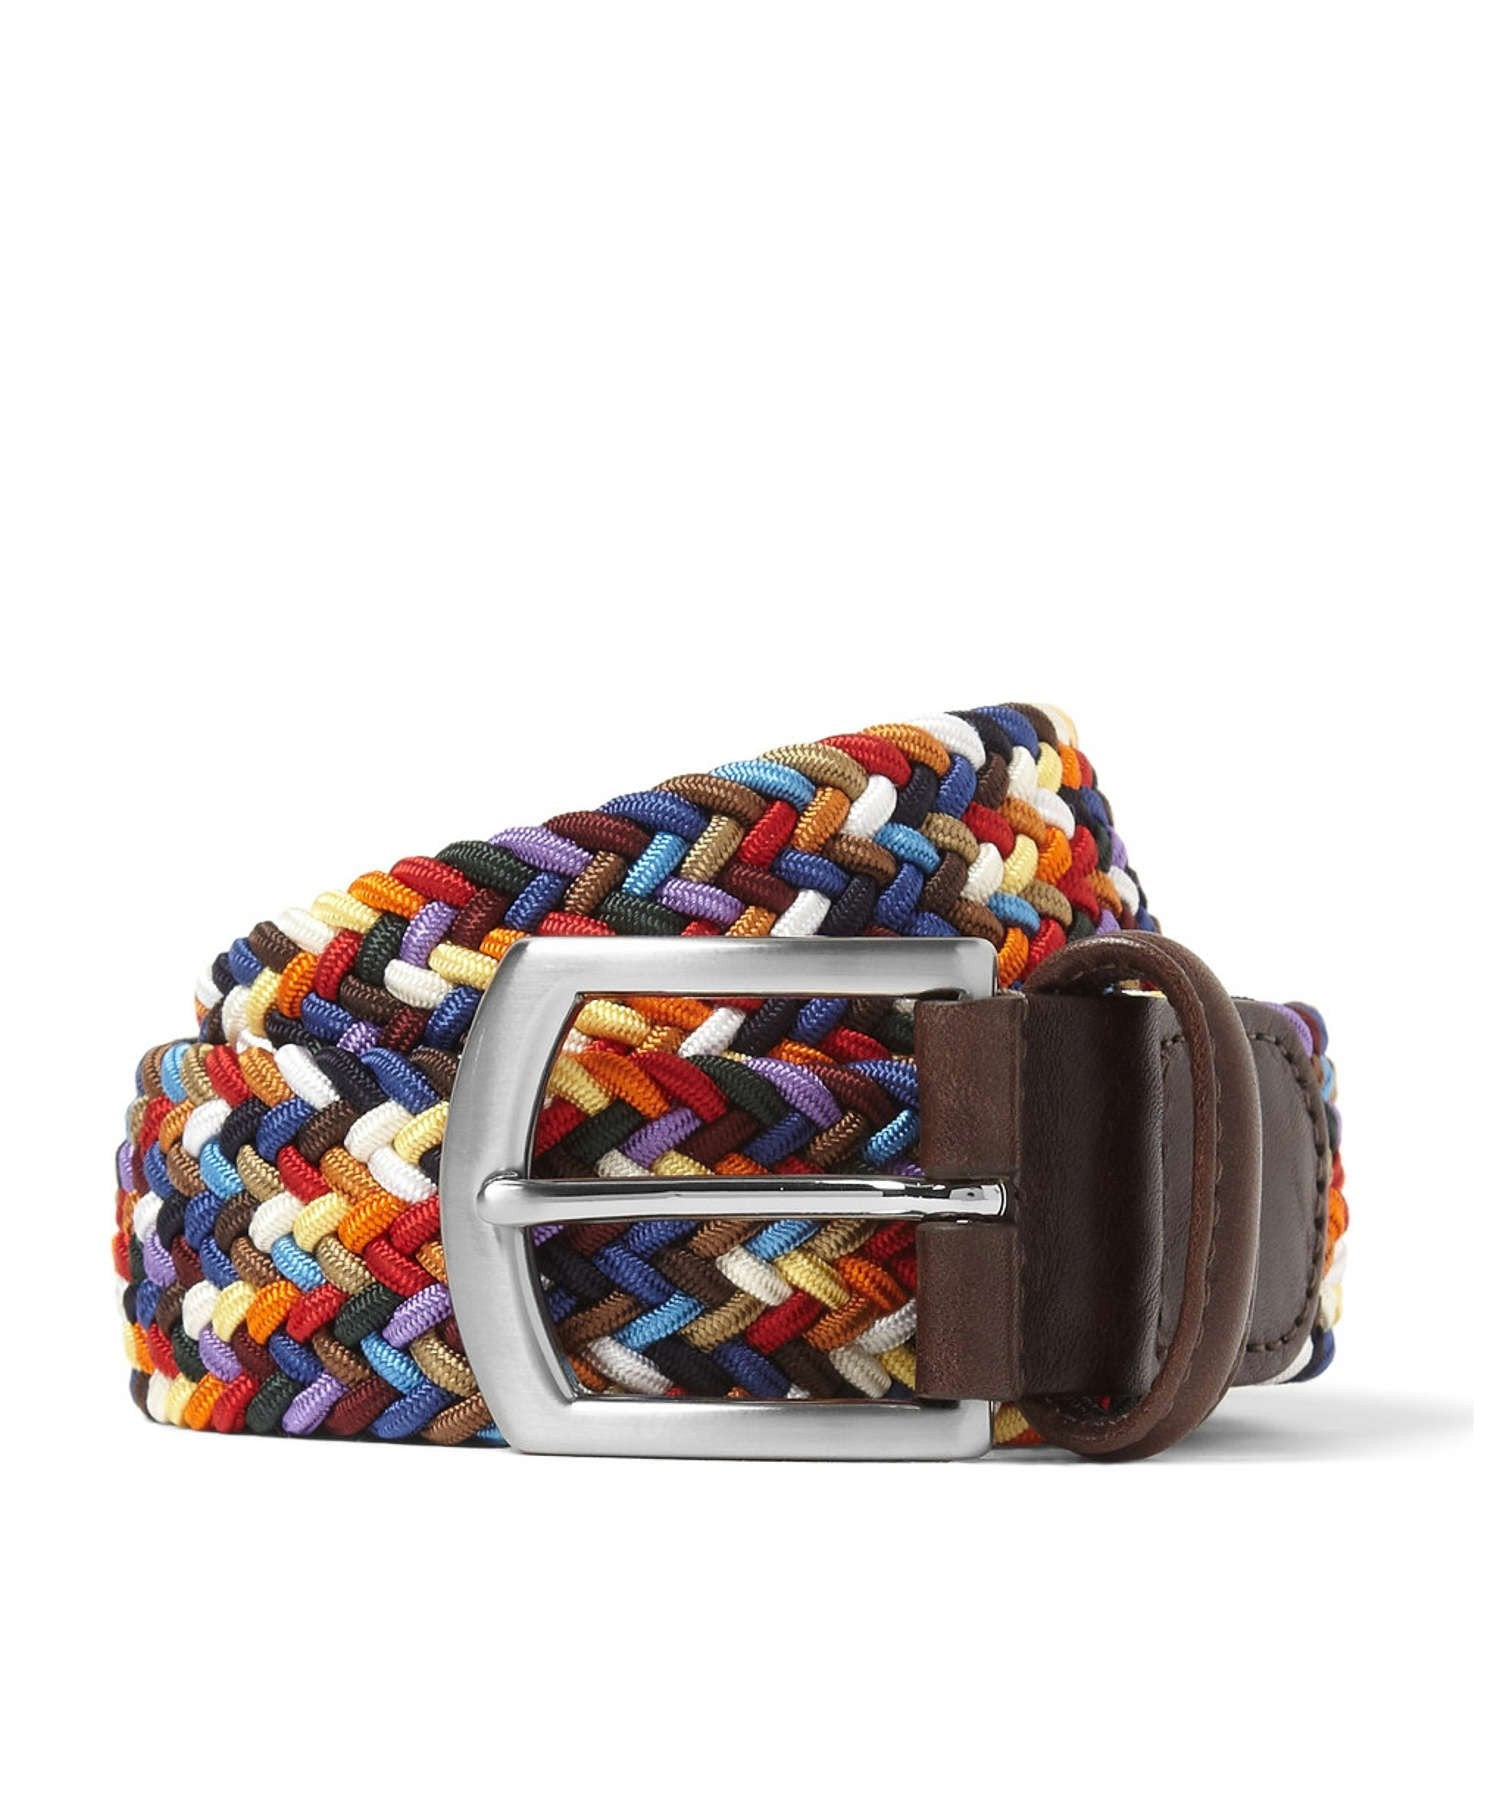 Anderson's Multi Color Woven Belt